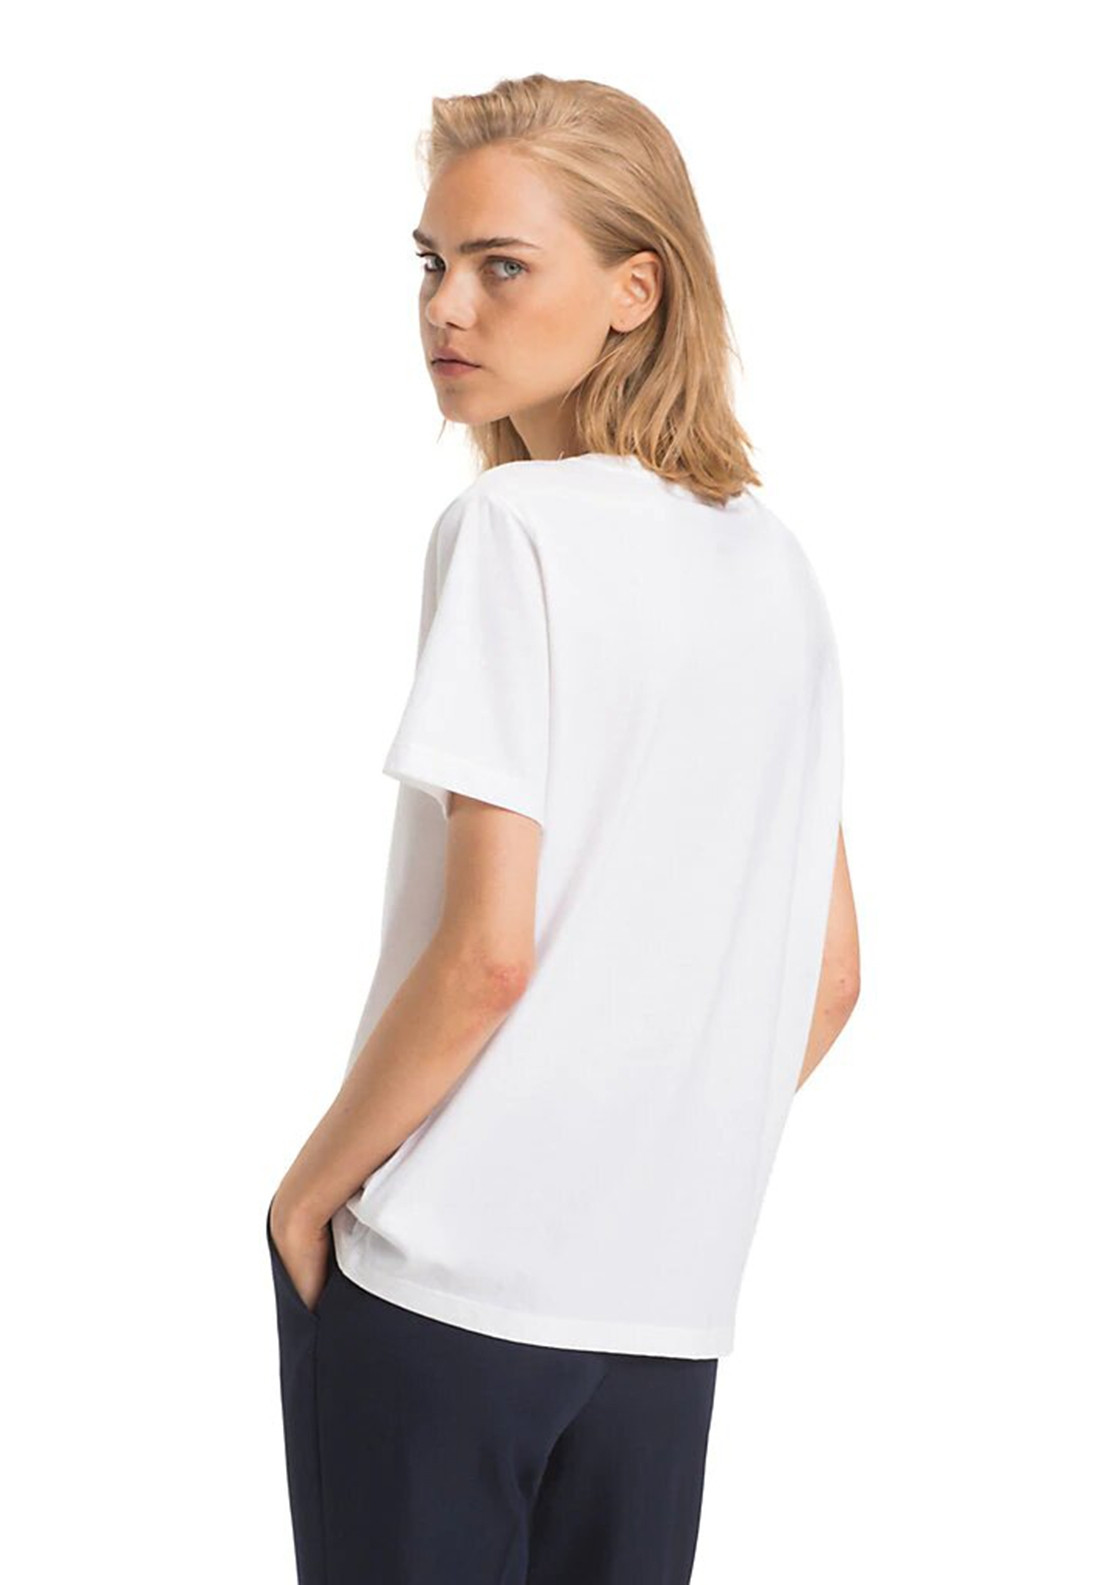 8cb69351 Tommy Hilfiger Womens Holli Logo T-Shirt, White. Be the first to review  this product